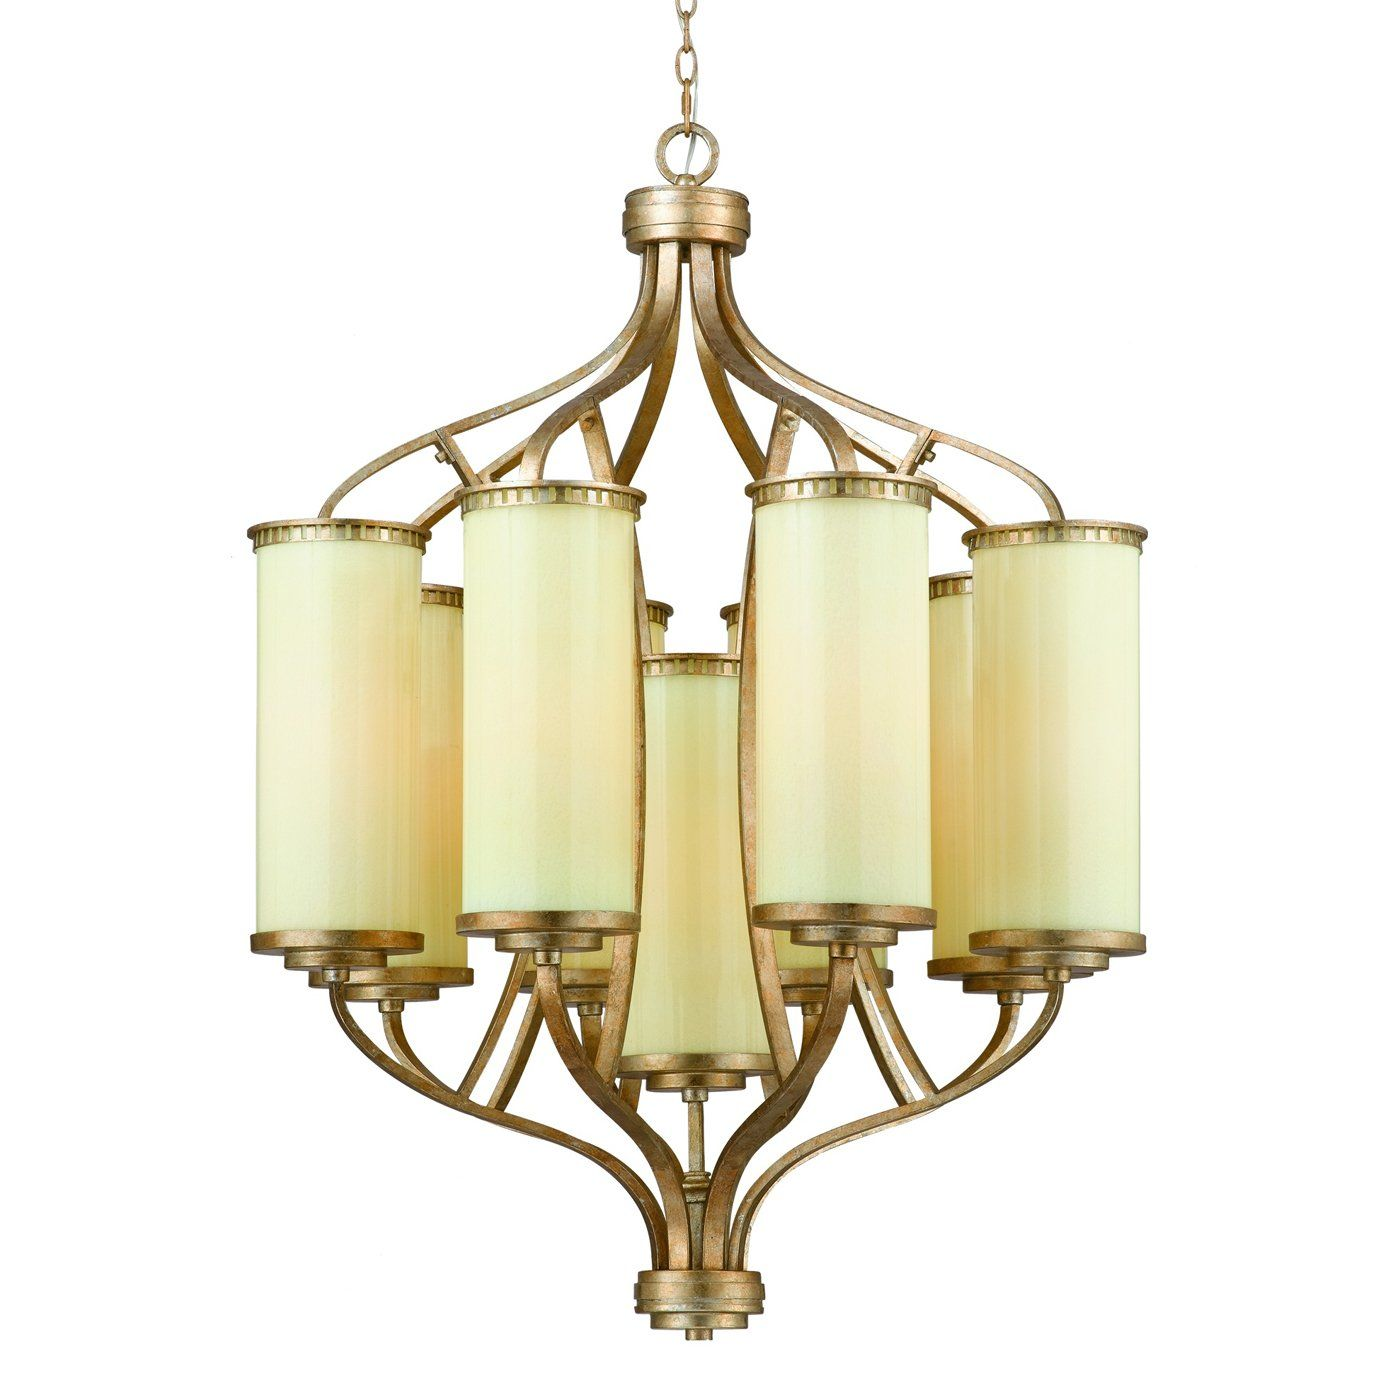 Chandelier Height 10 Foot Ceiling Triarch 38514 9 Light Il Maestro Chandelier Atg Stores 977 50